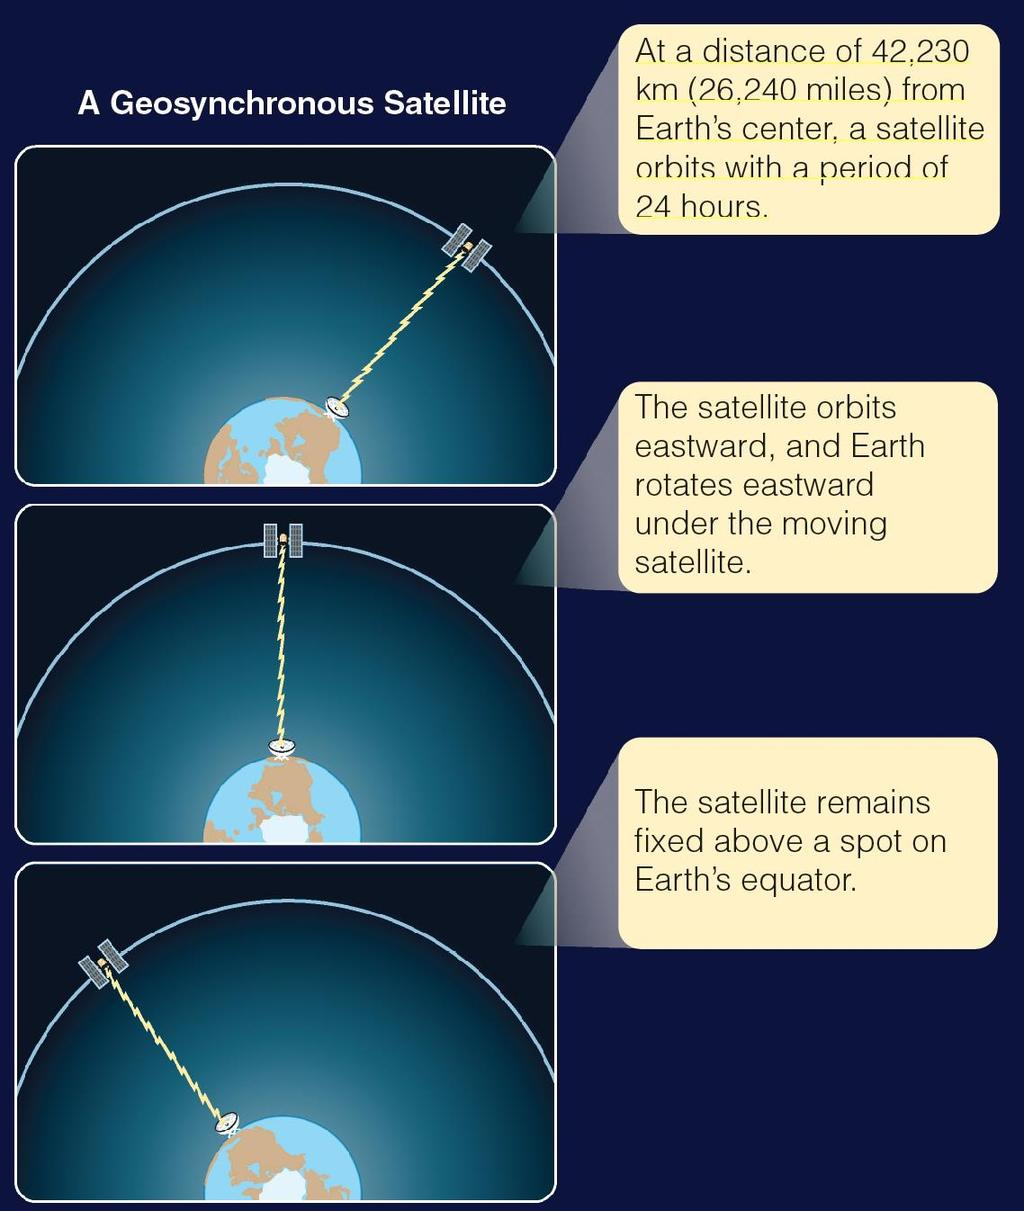 Geosynchronous Orbits A geosynchronous satellite orbits eastward with the rotation of Earth and